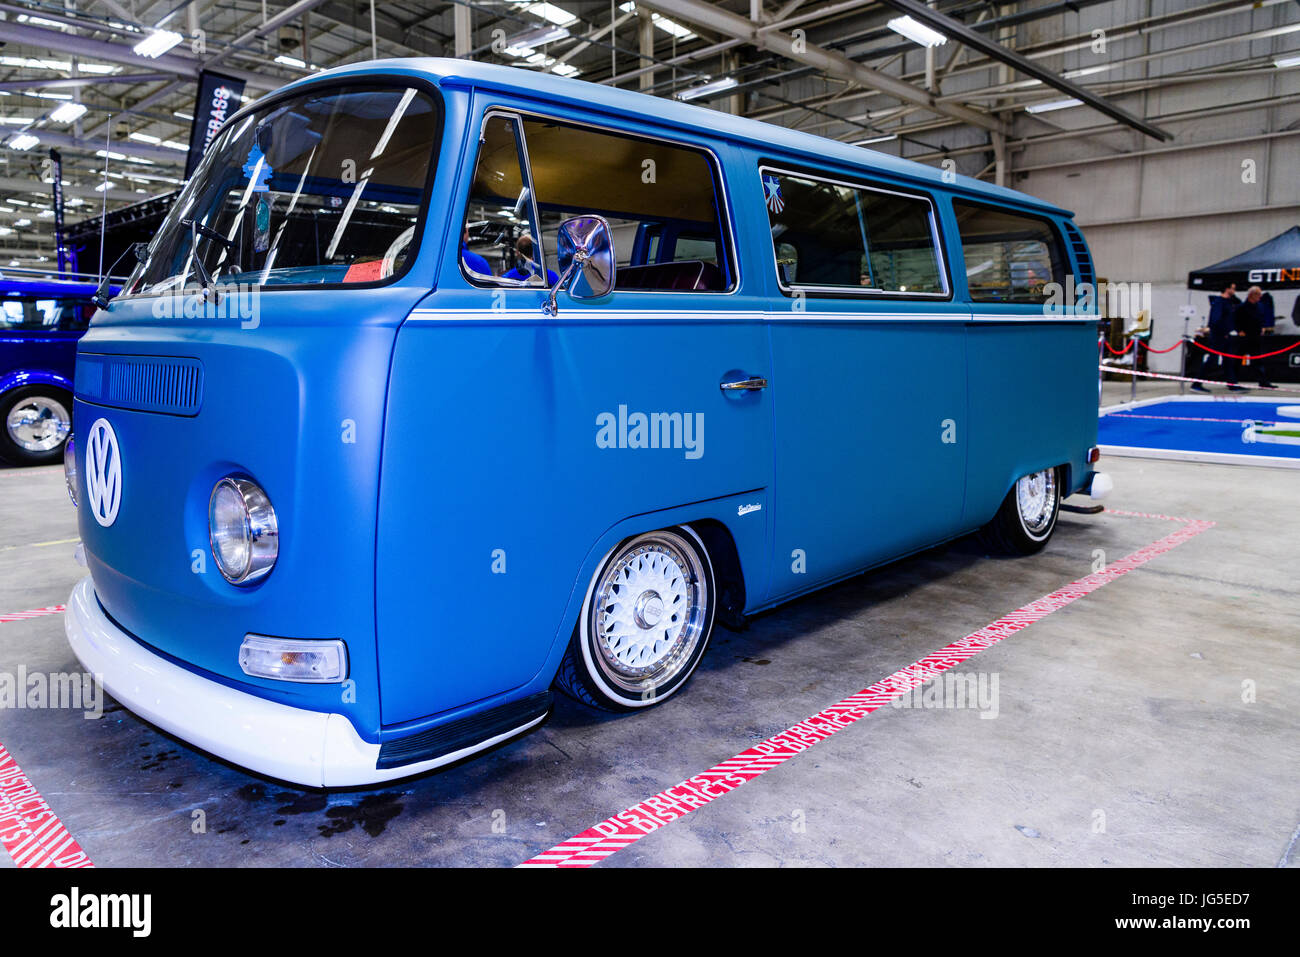 Modified Car Stock Photos & Modified Car Stock Images - Alamy